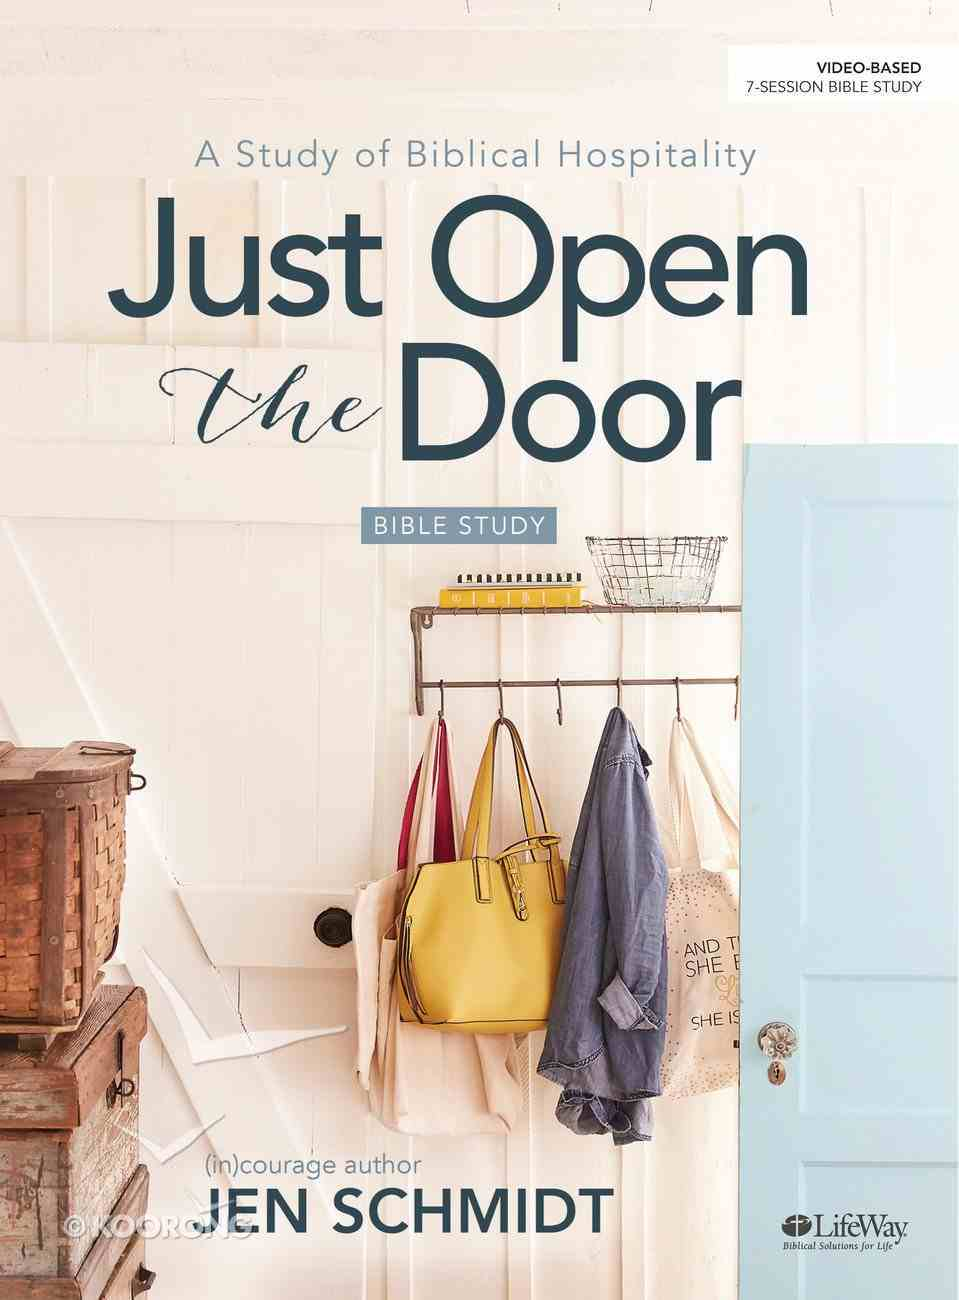 Just Open the Door: A Study of Biblical Hospitality (Bible Study Book) Paperback